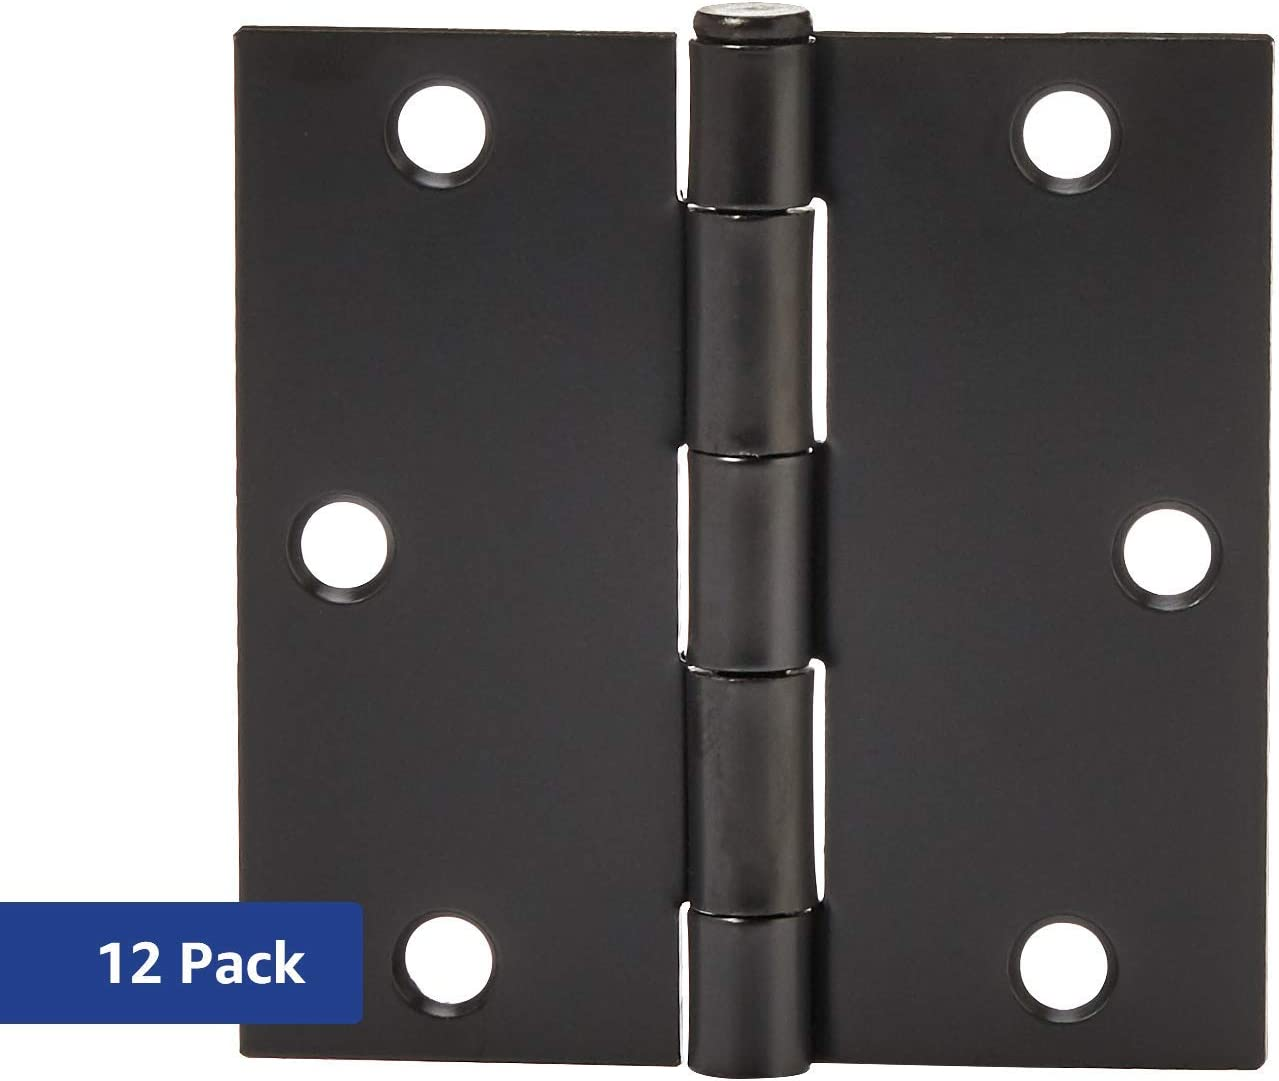 AmazonBasics Square Door Hinges, 3.5 Inch x 3.5 Inch, 12 Pack, Matte Black